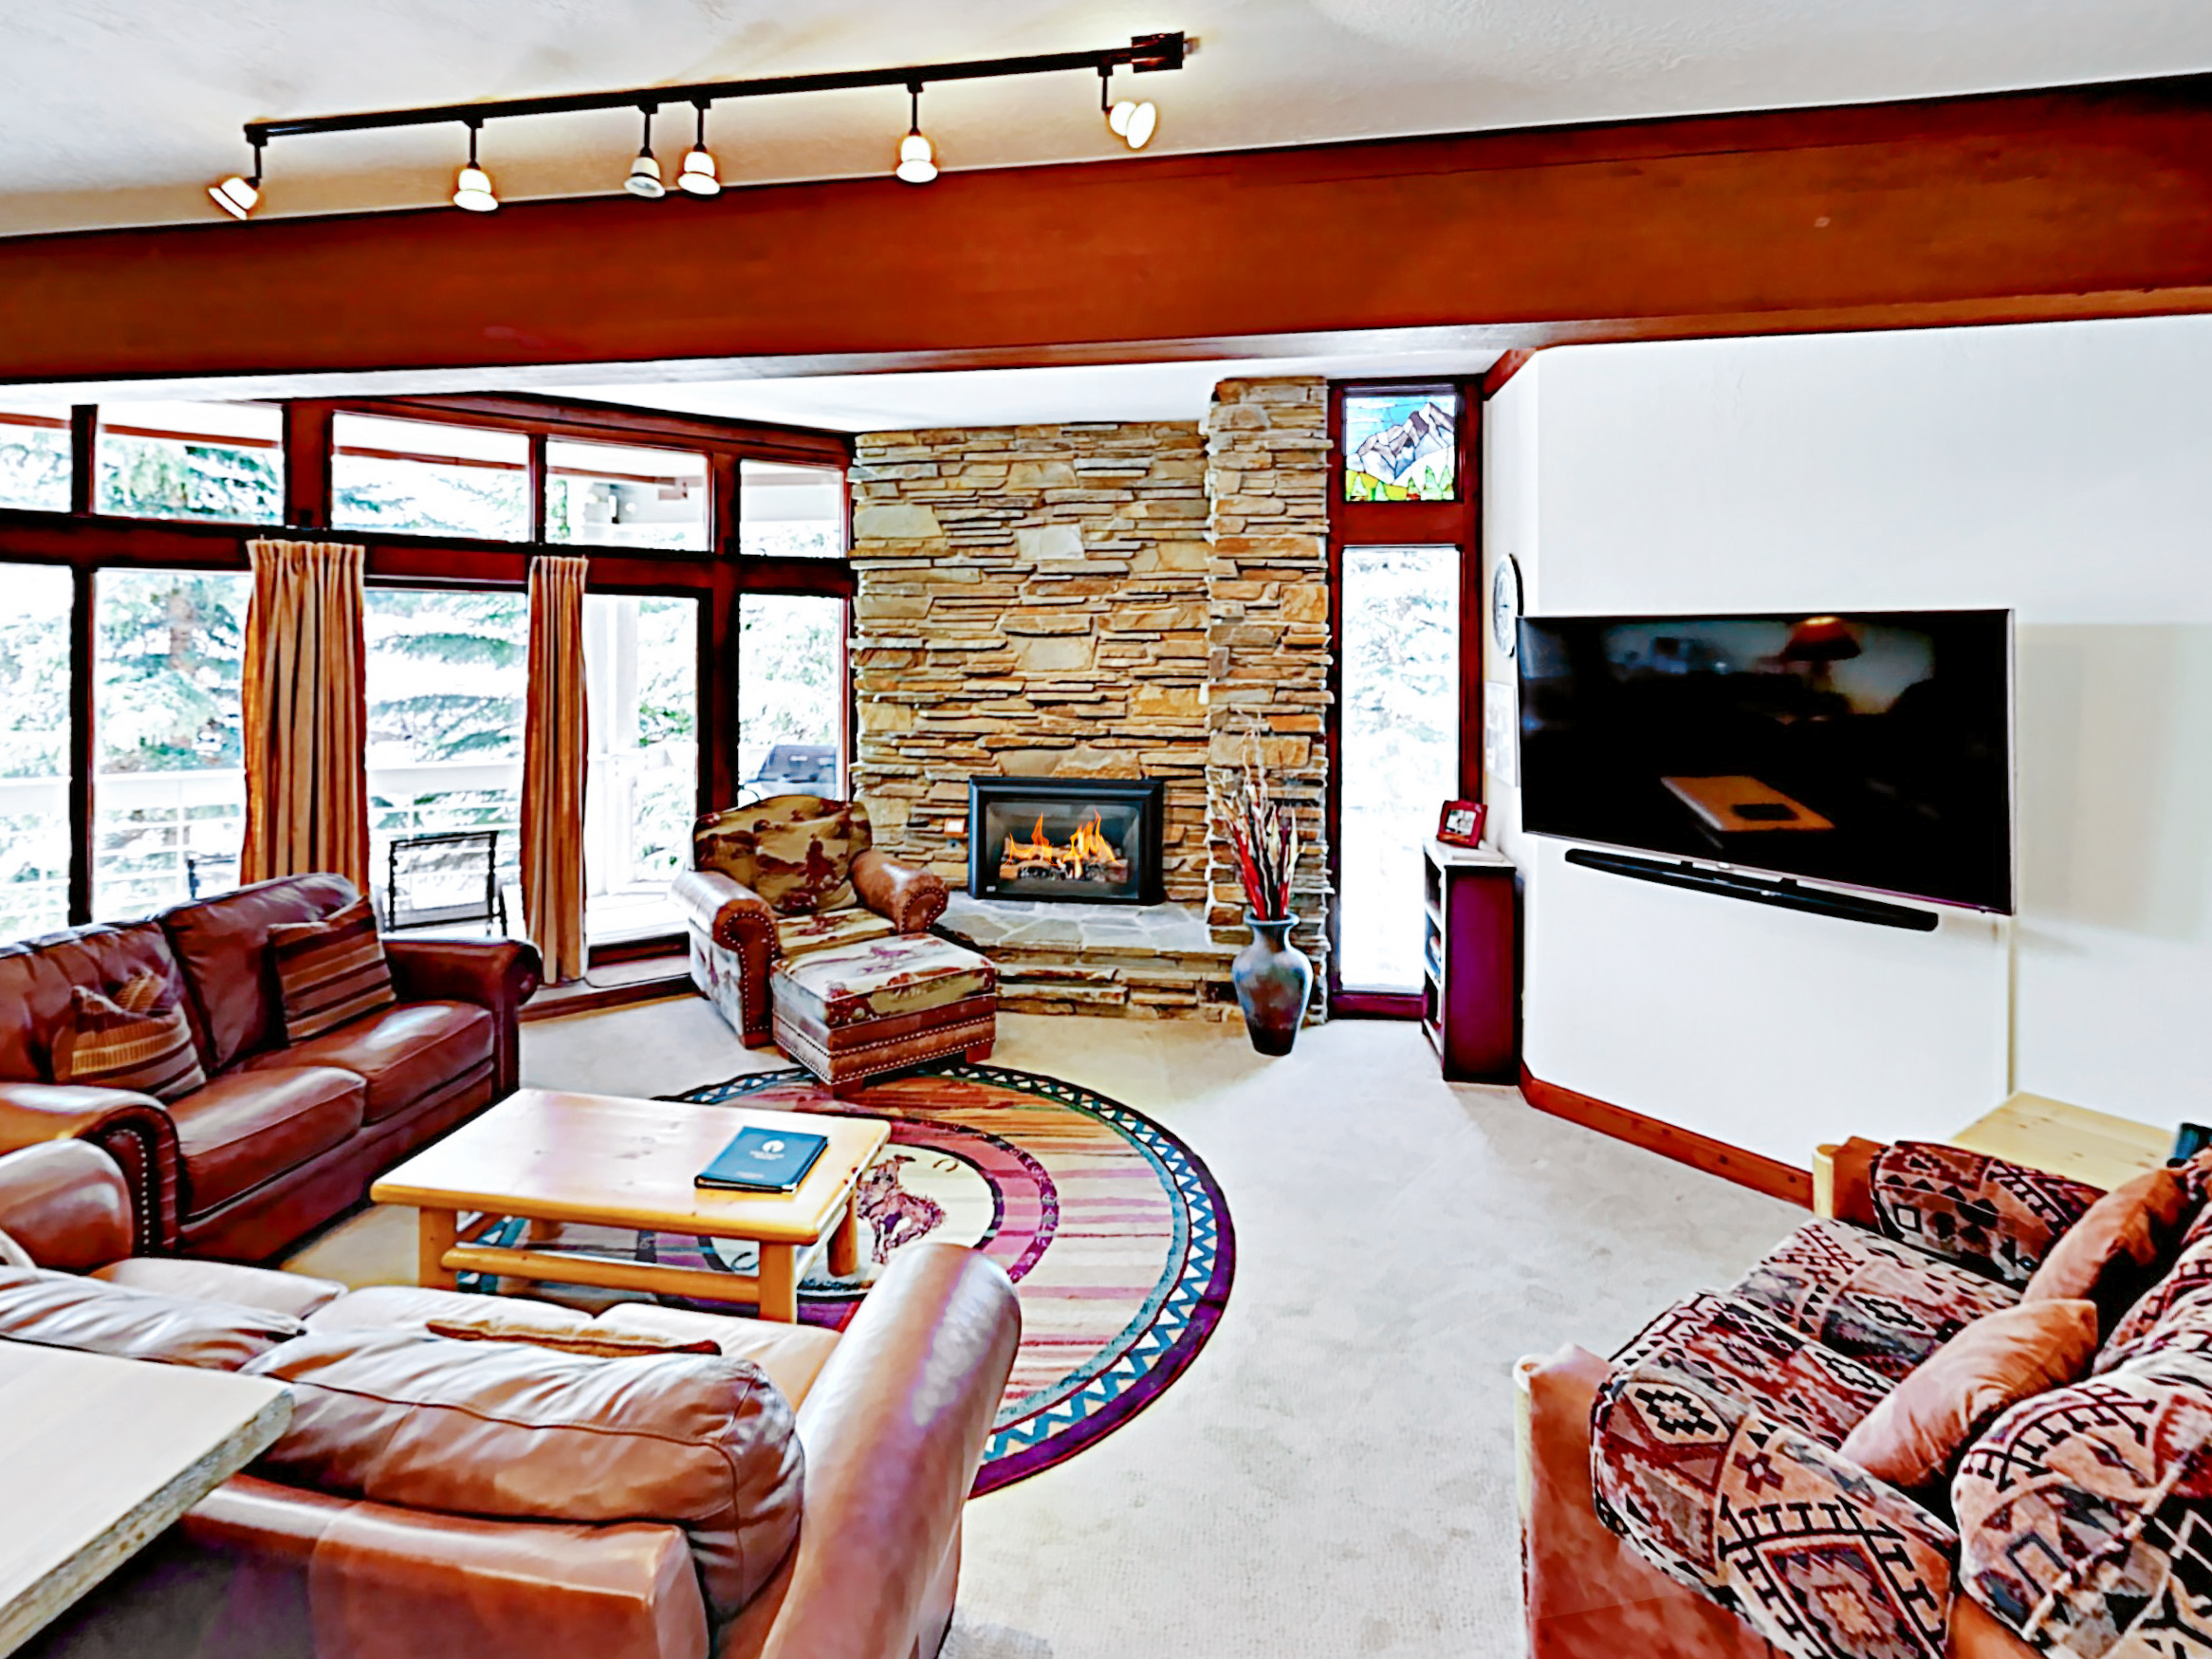 Park City UT Vacation Rental Welcome! This condo